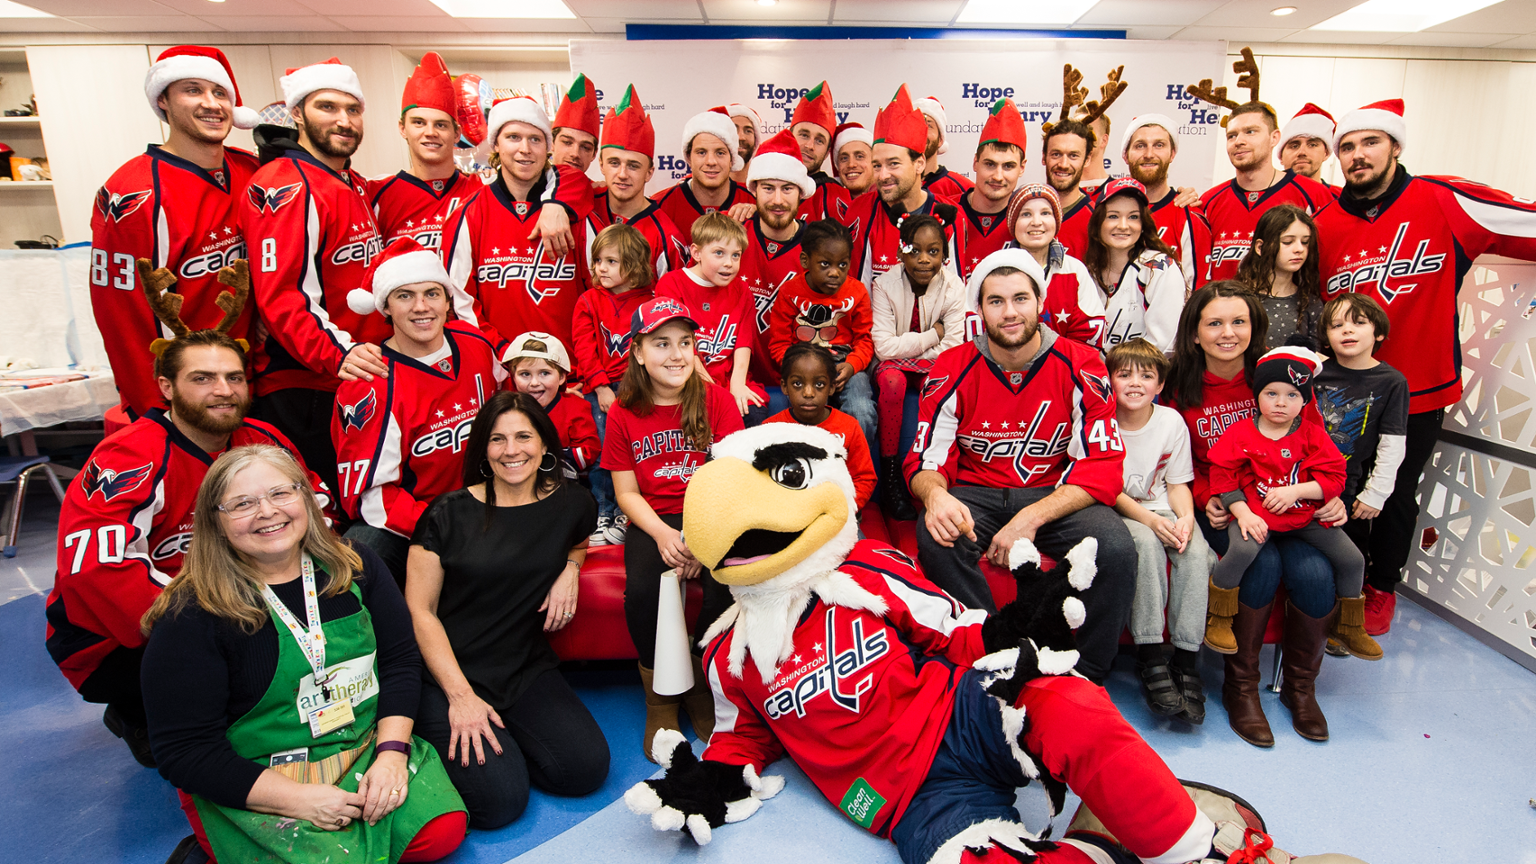 Capitals News: Caps Visit a Hospital to Spread Some Holiday Cheer